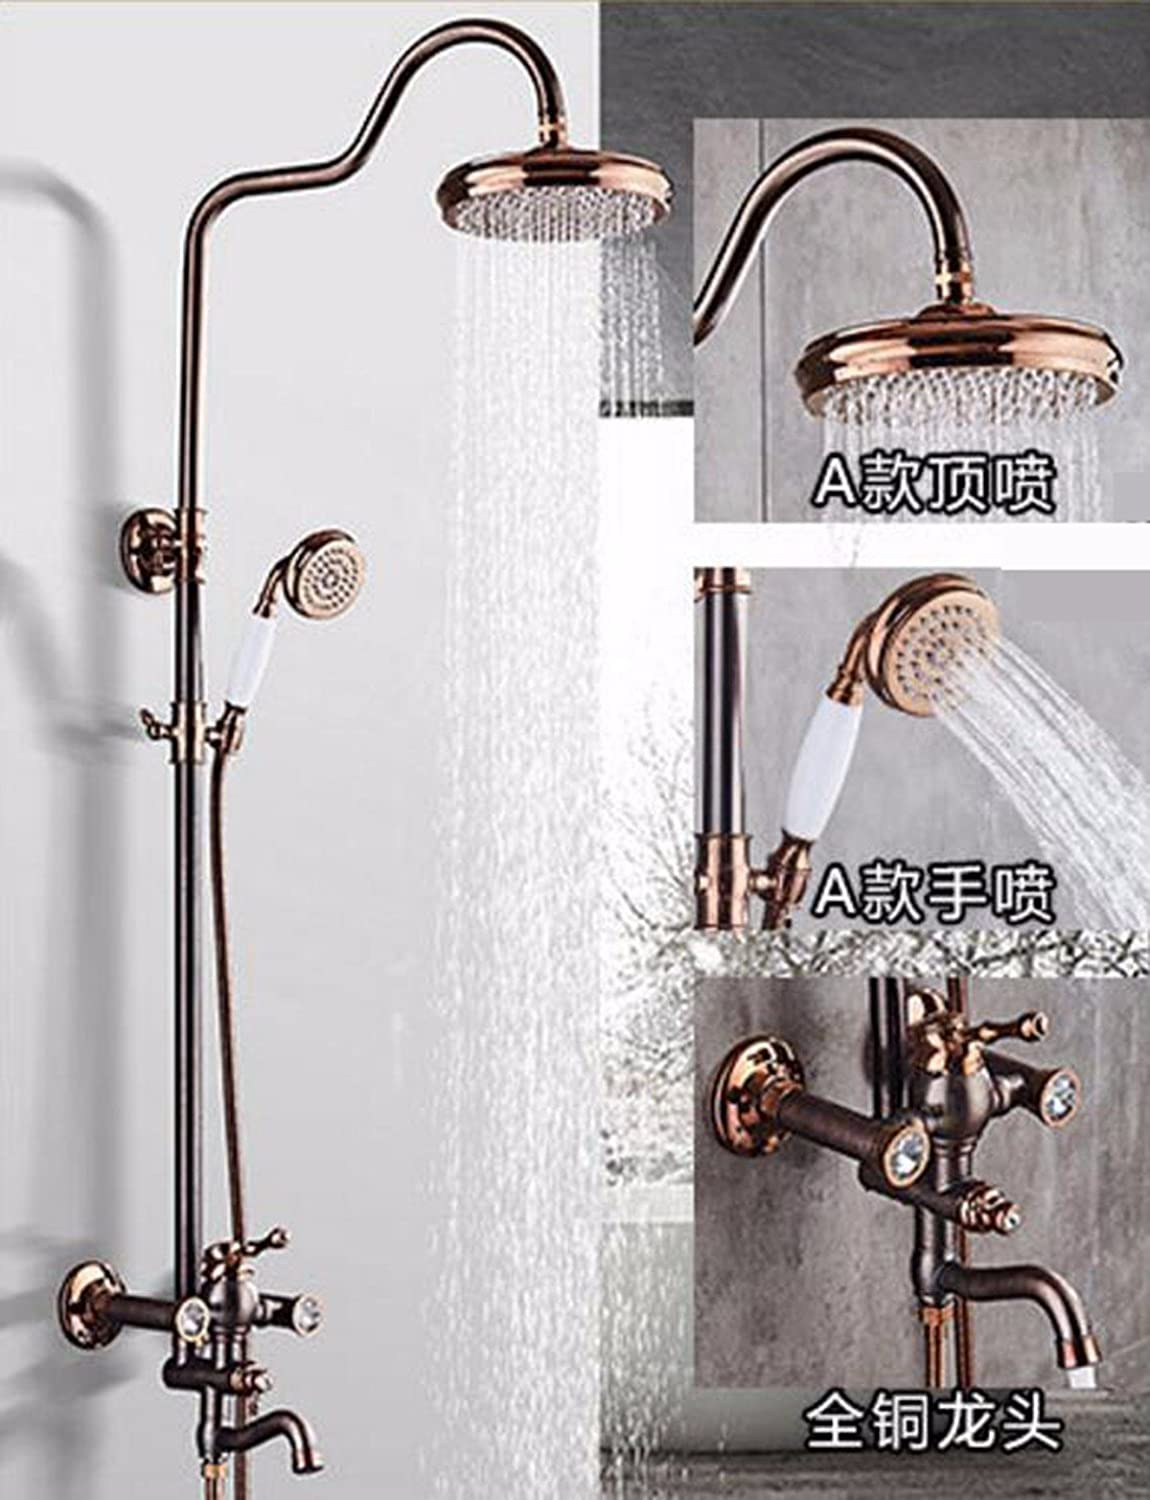 Shower European Faucet Set All Copper Surface Mounted Shower Set,A